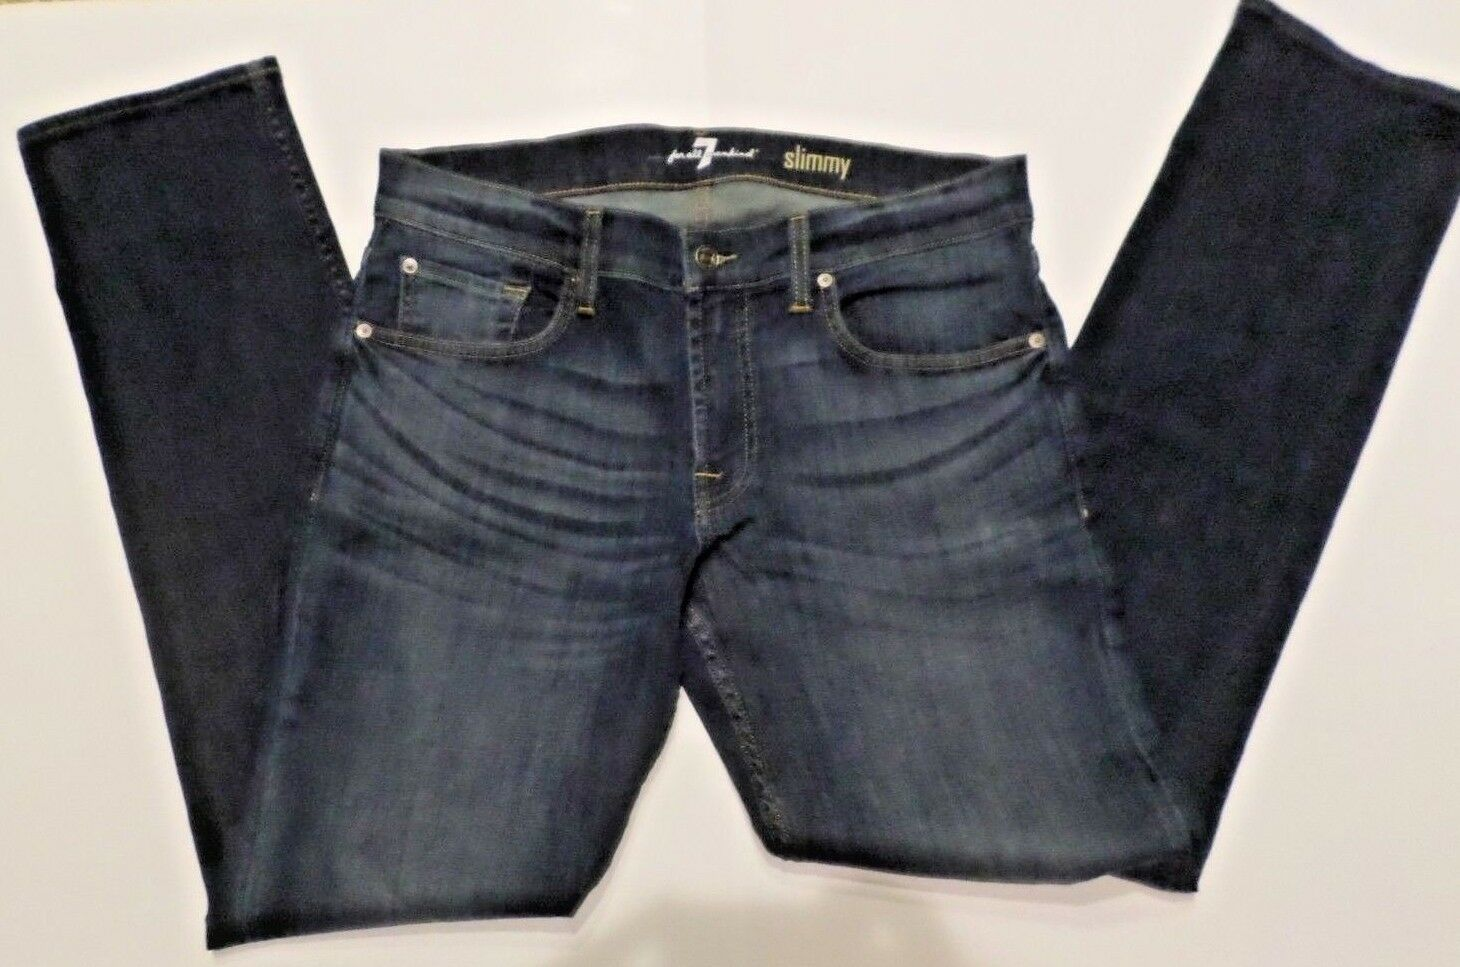 7 For All Mankind Slimmy Men's Jeans 34 bluee